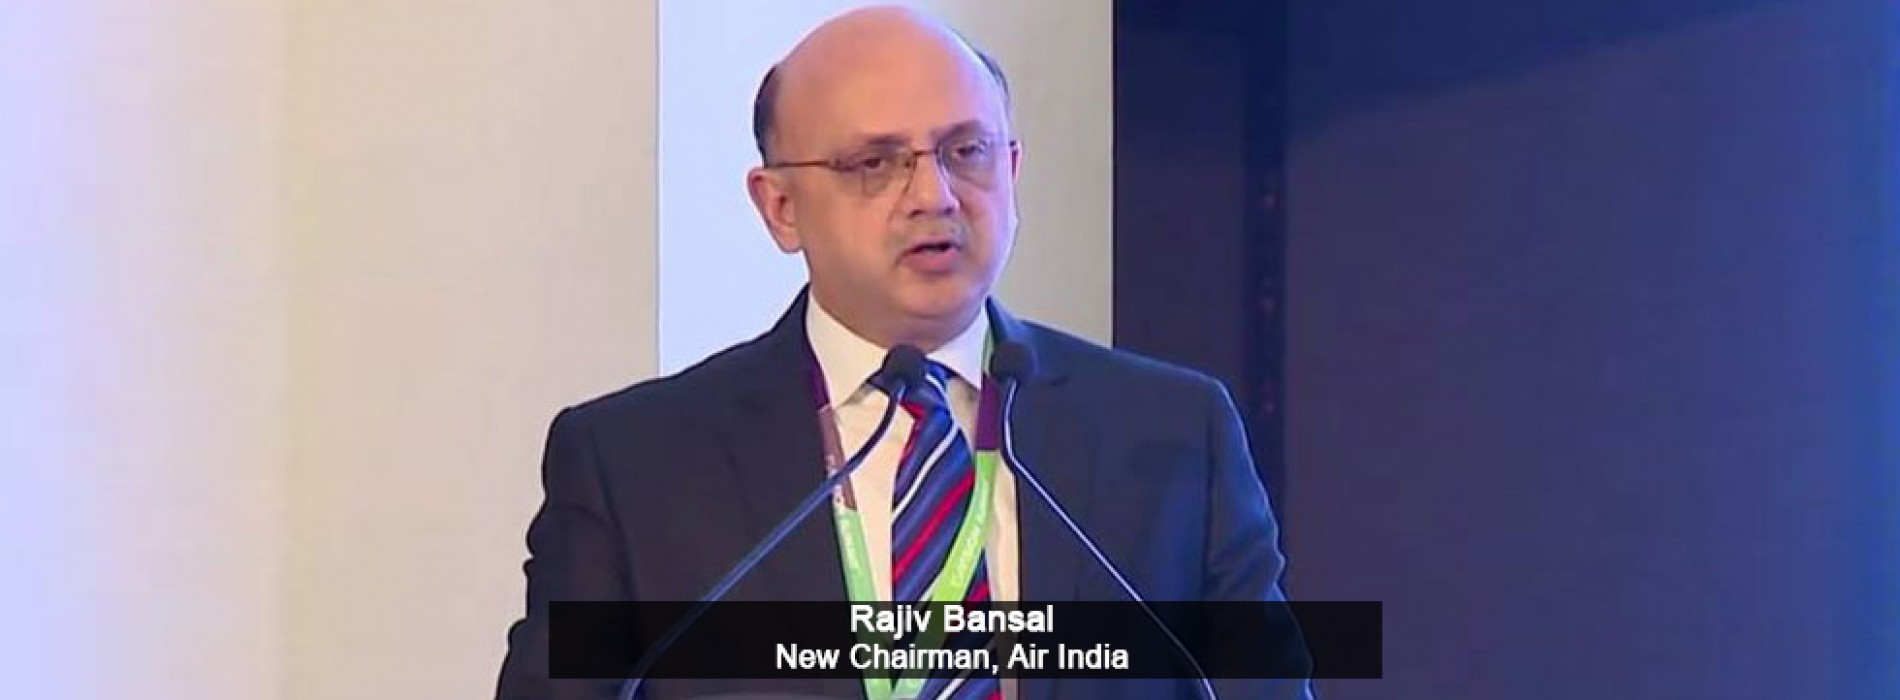 Rajiv Bansal is the new Air India CMD